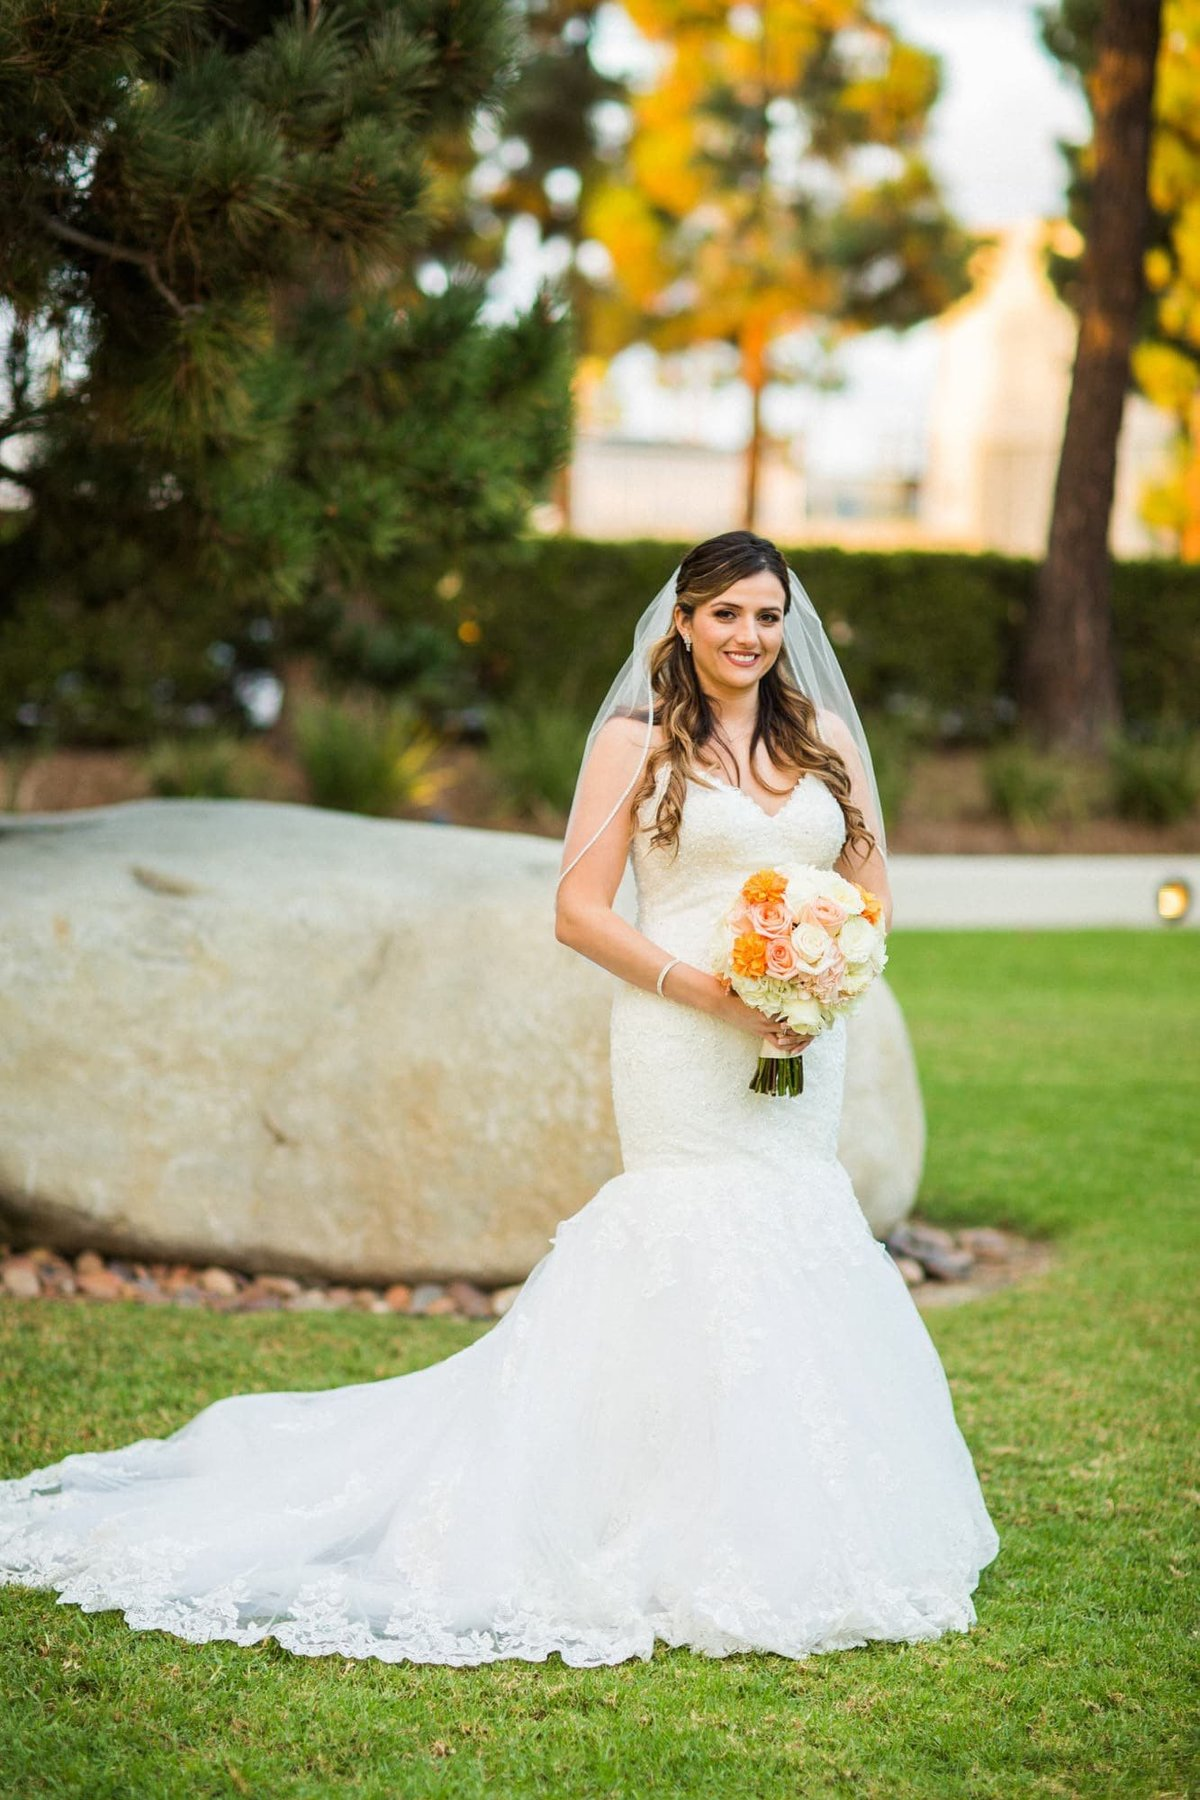 Turnip Rose Promenade Gardens Weddings (3)